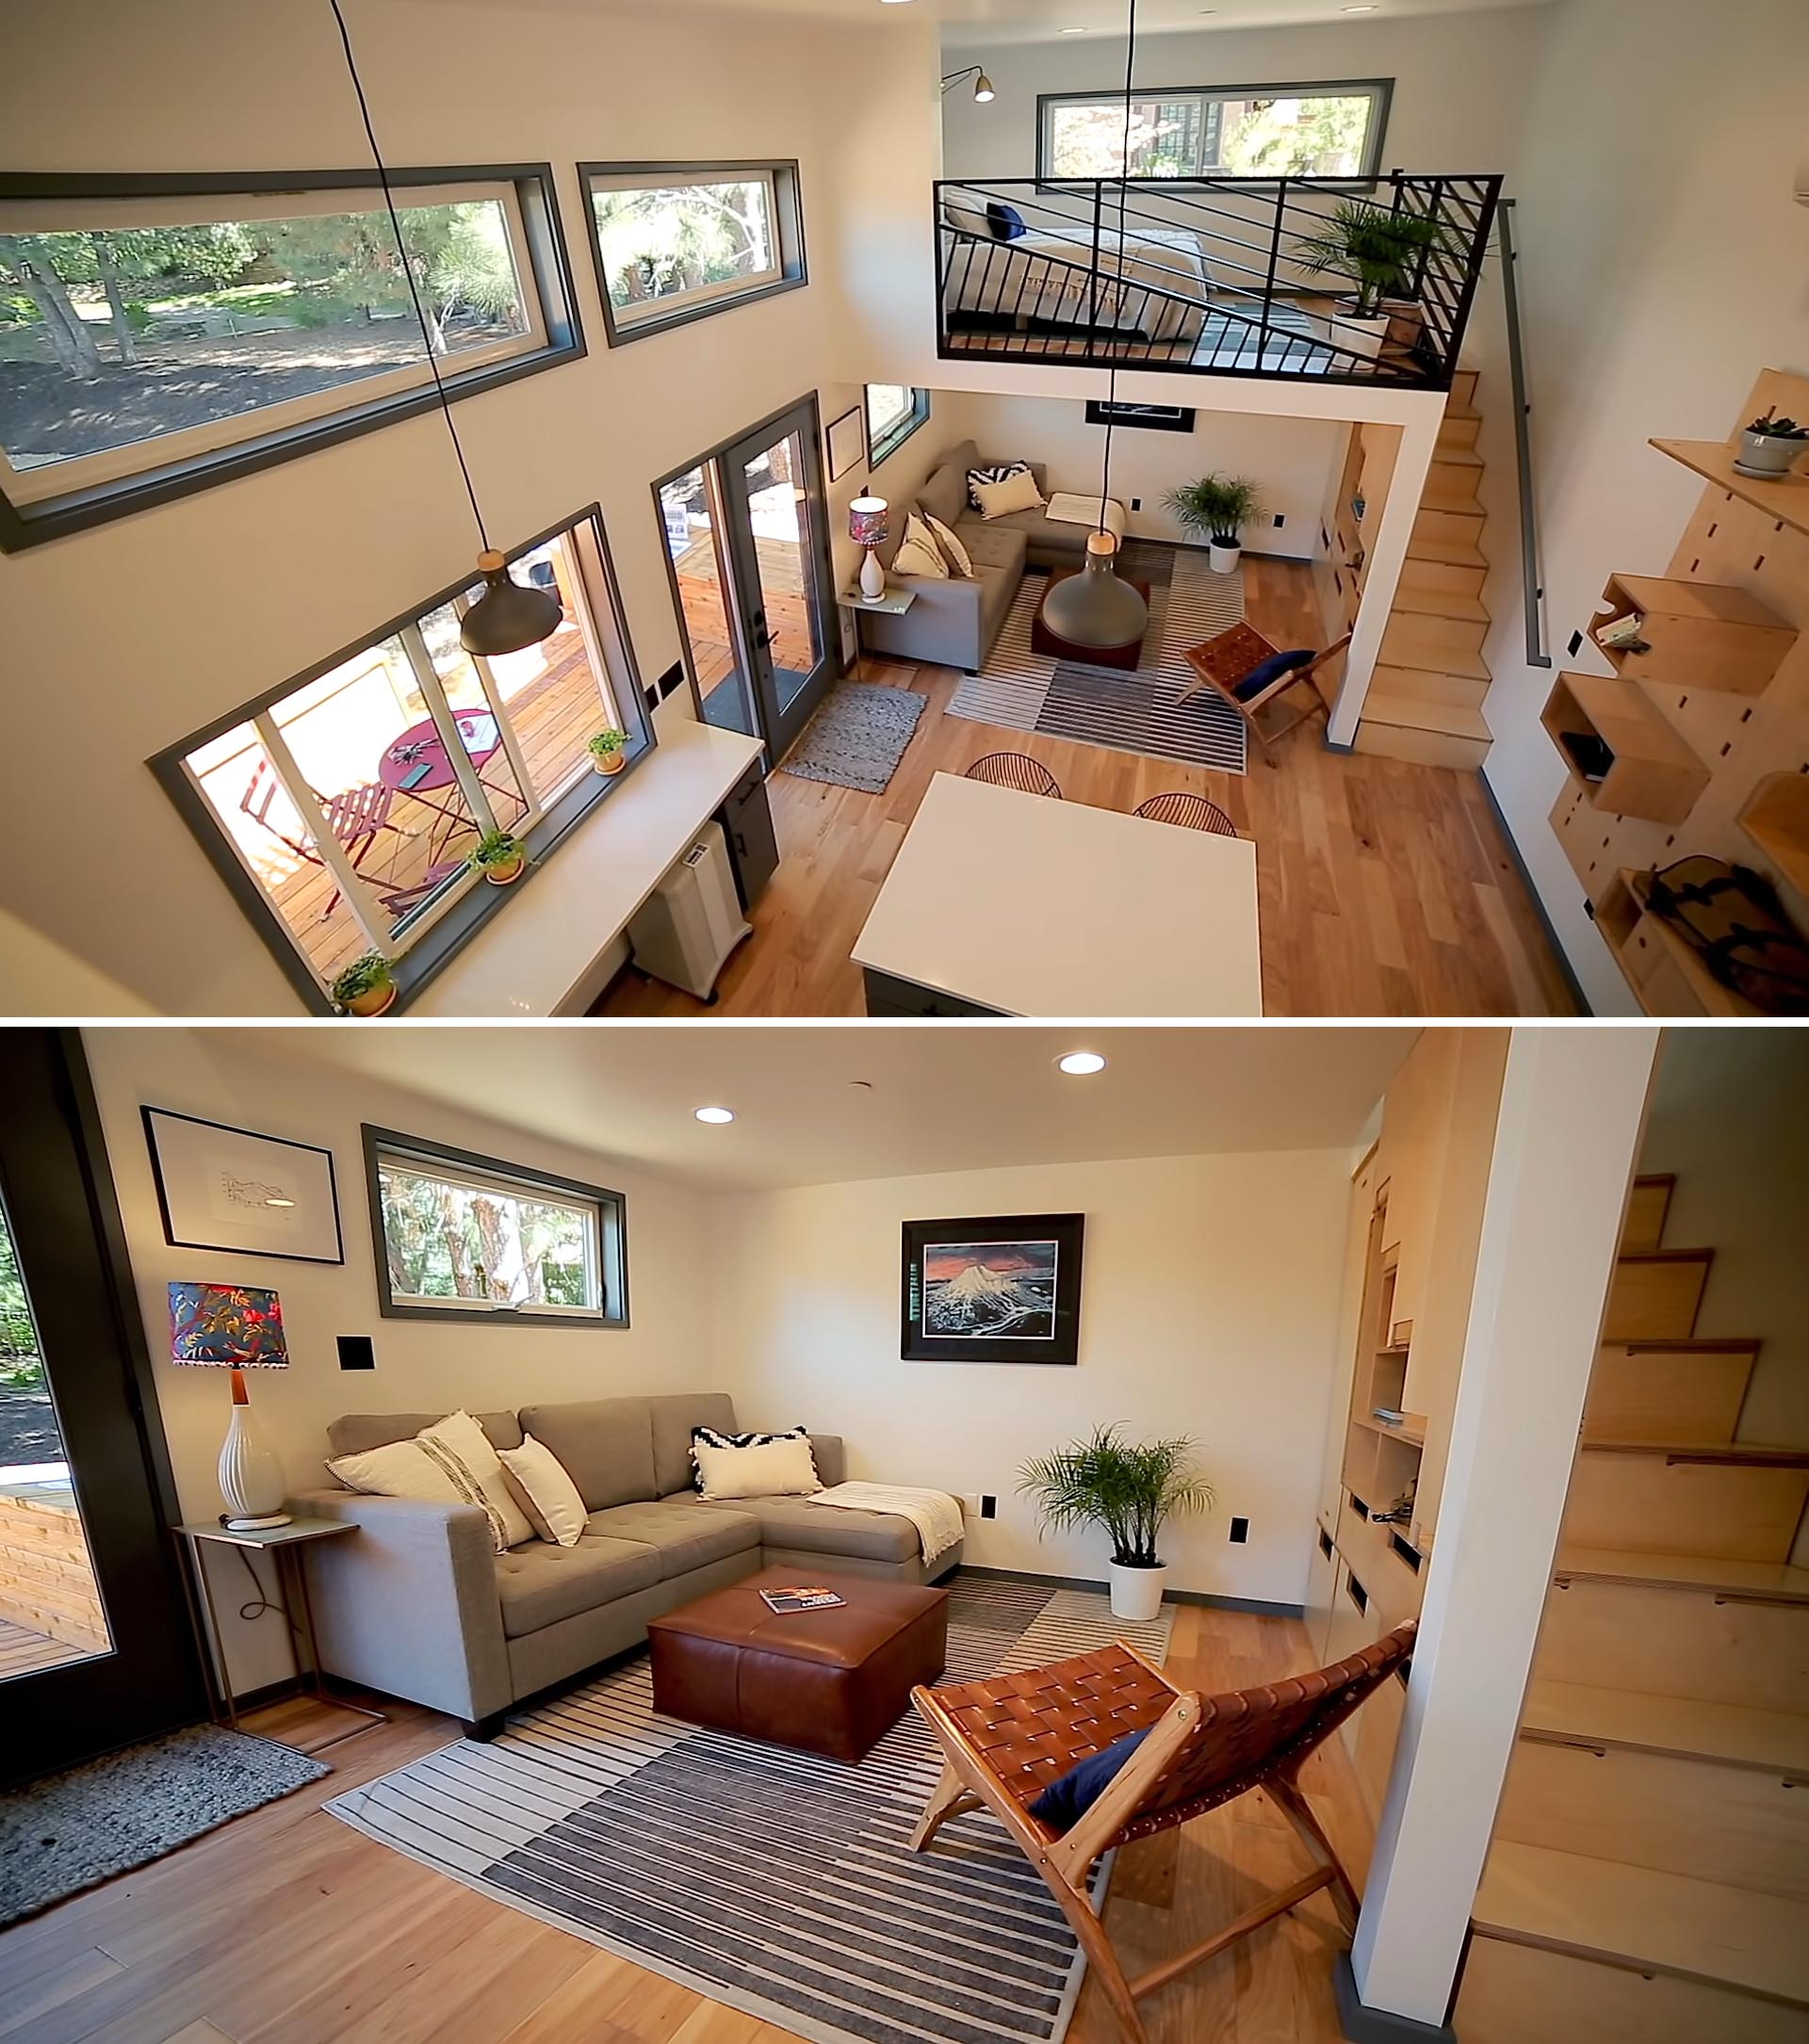 A tiny house with a main floor living room and kitchen, and a lofted bedroom.